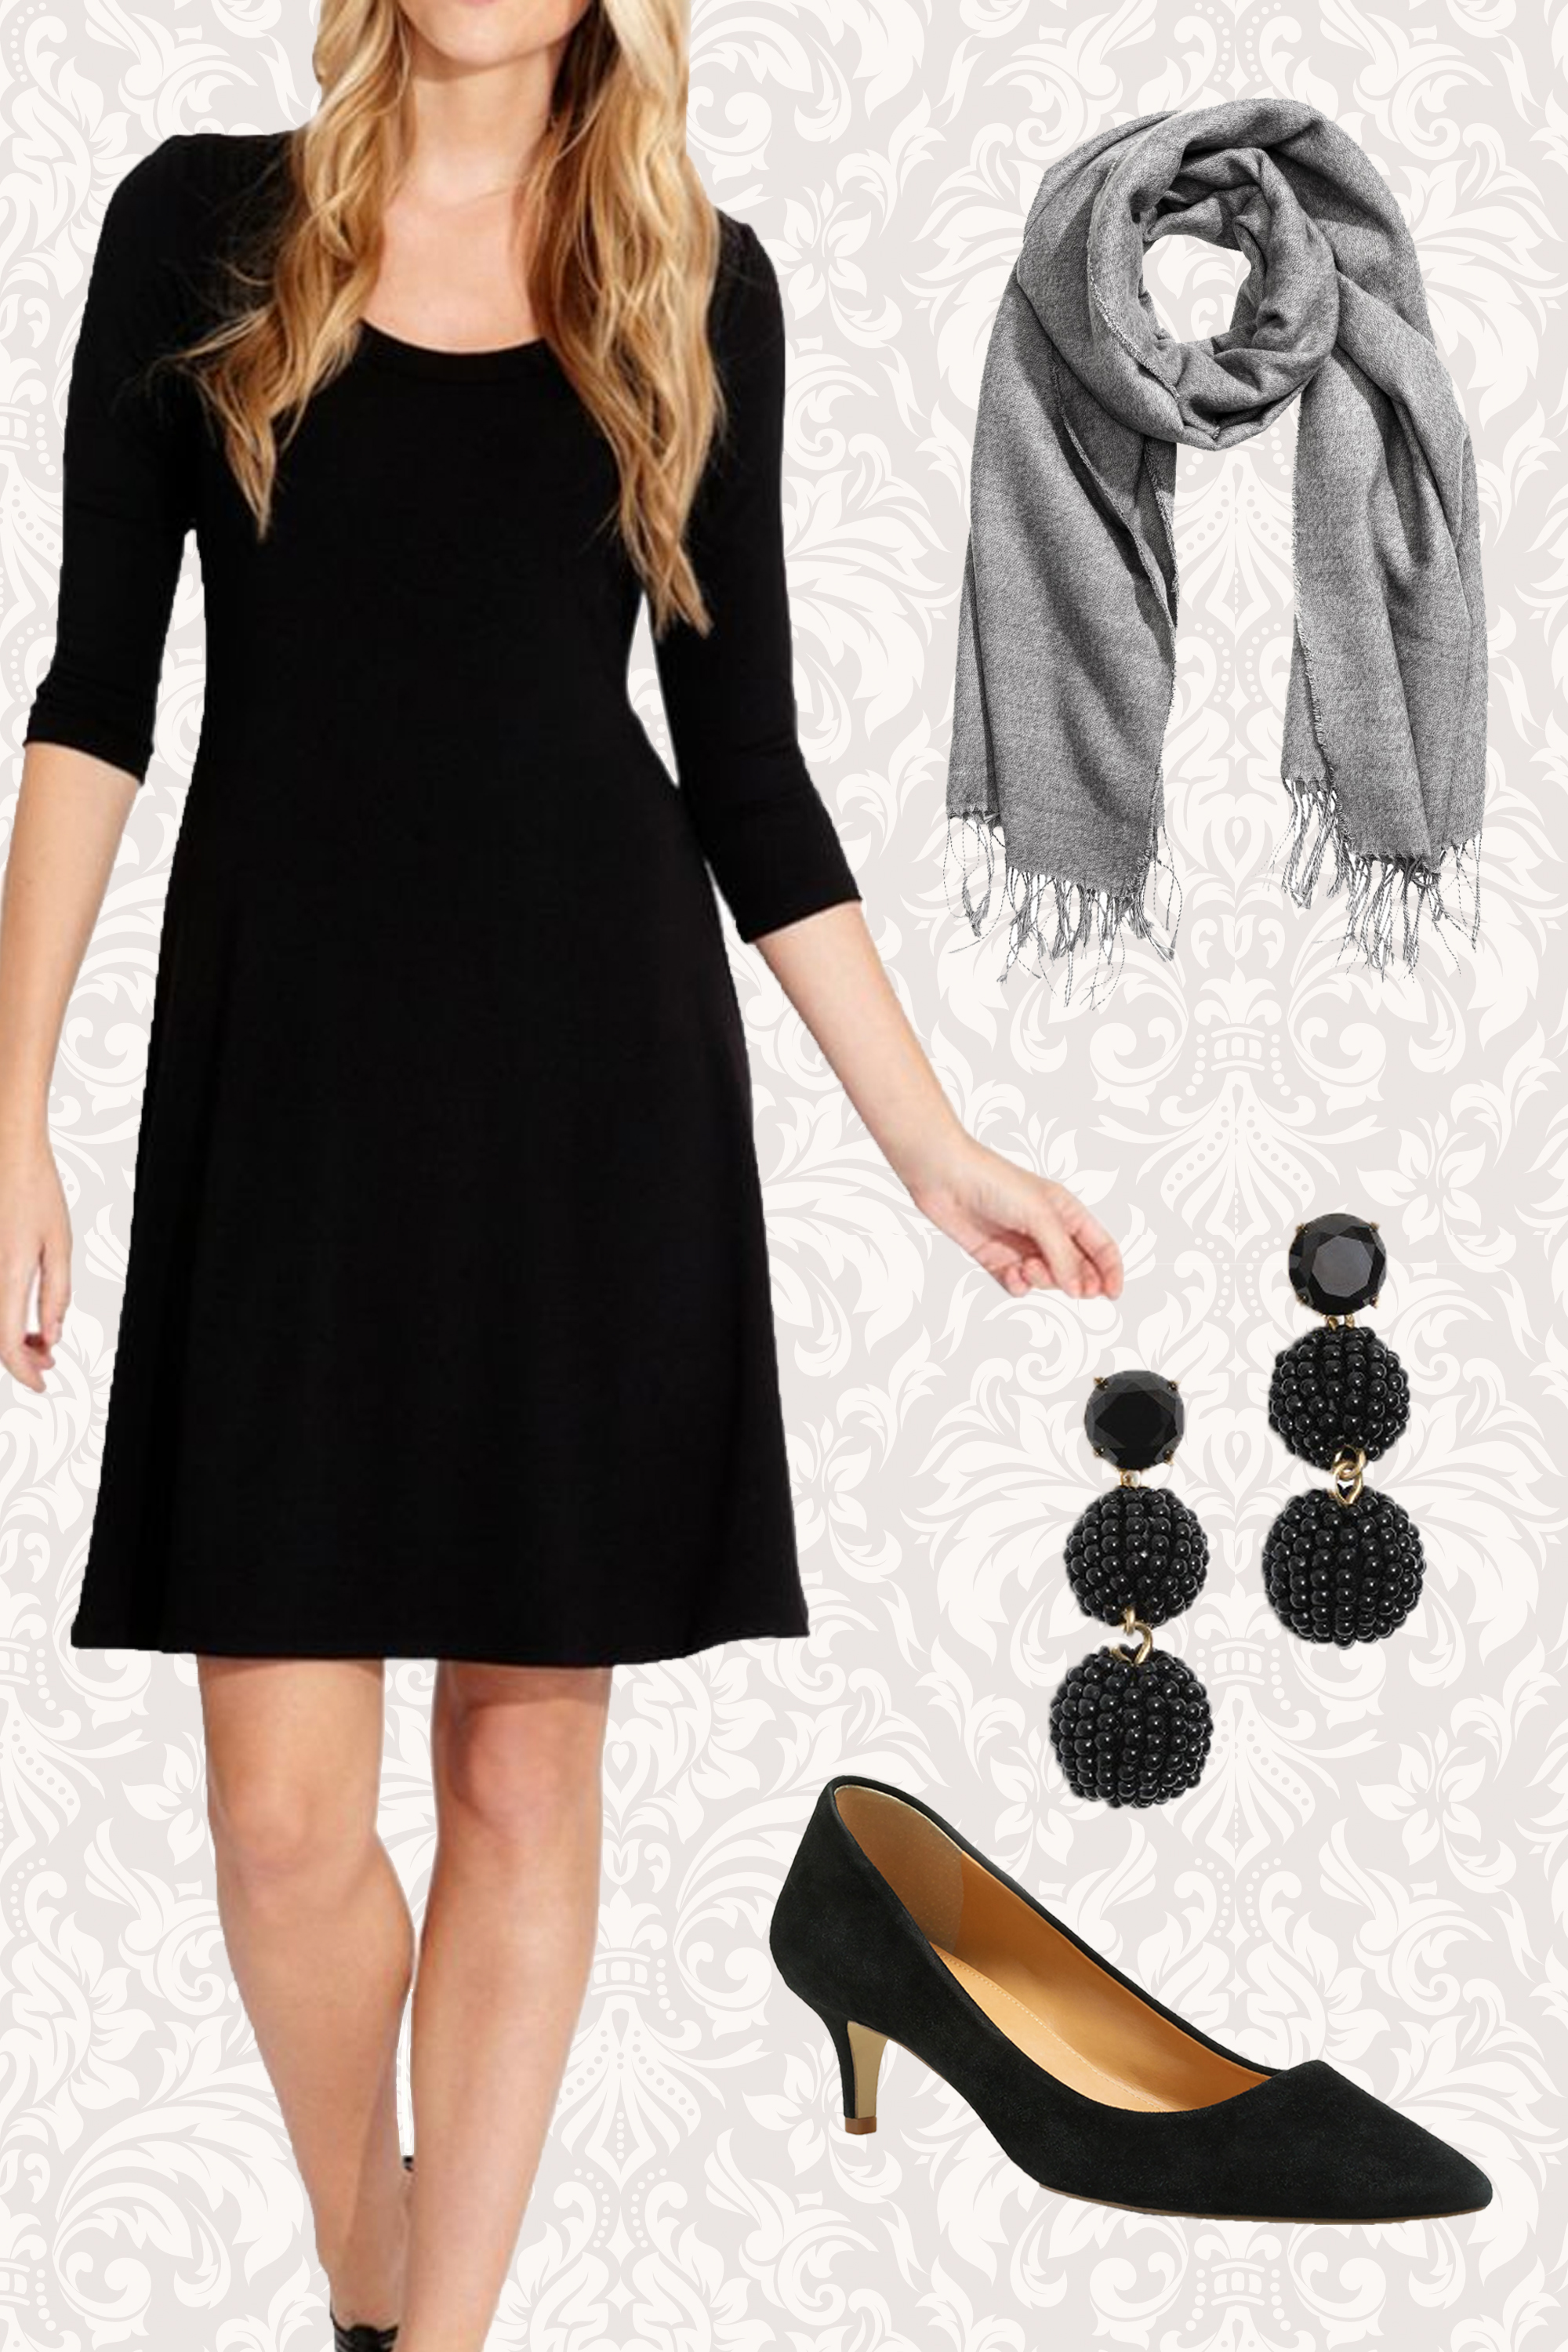 What to Wear to a Funeral - What Not to Wear to a Funeral